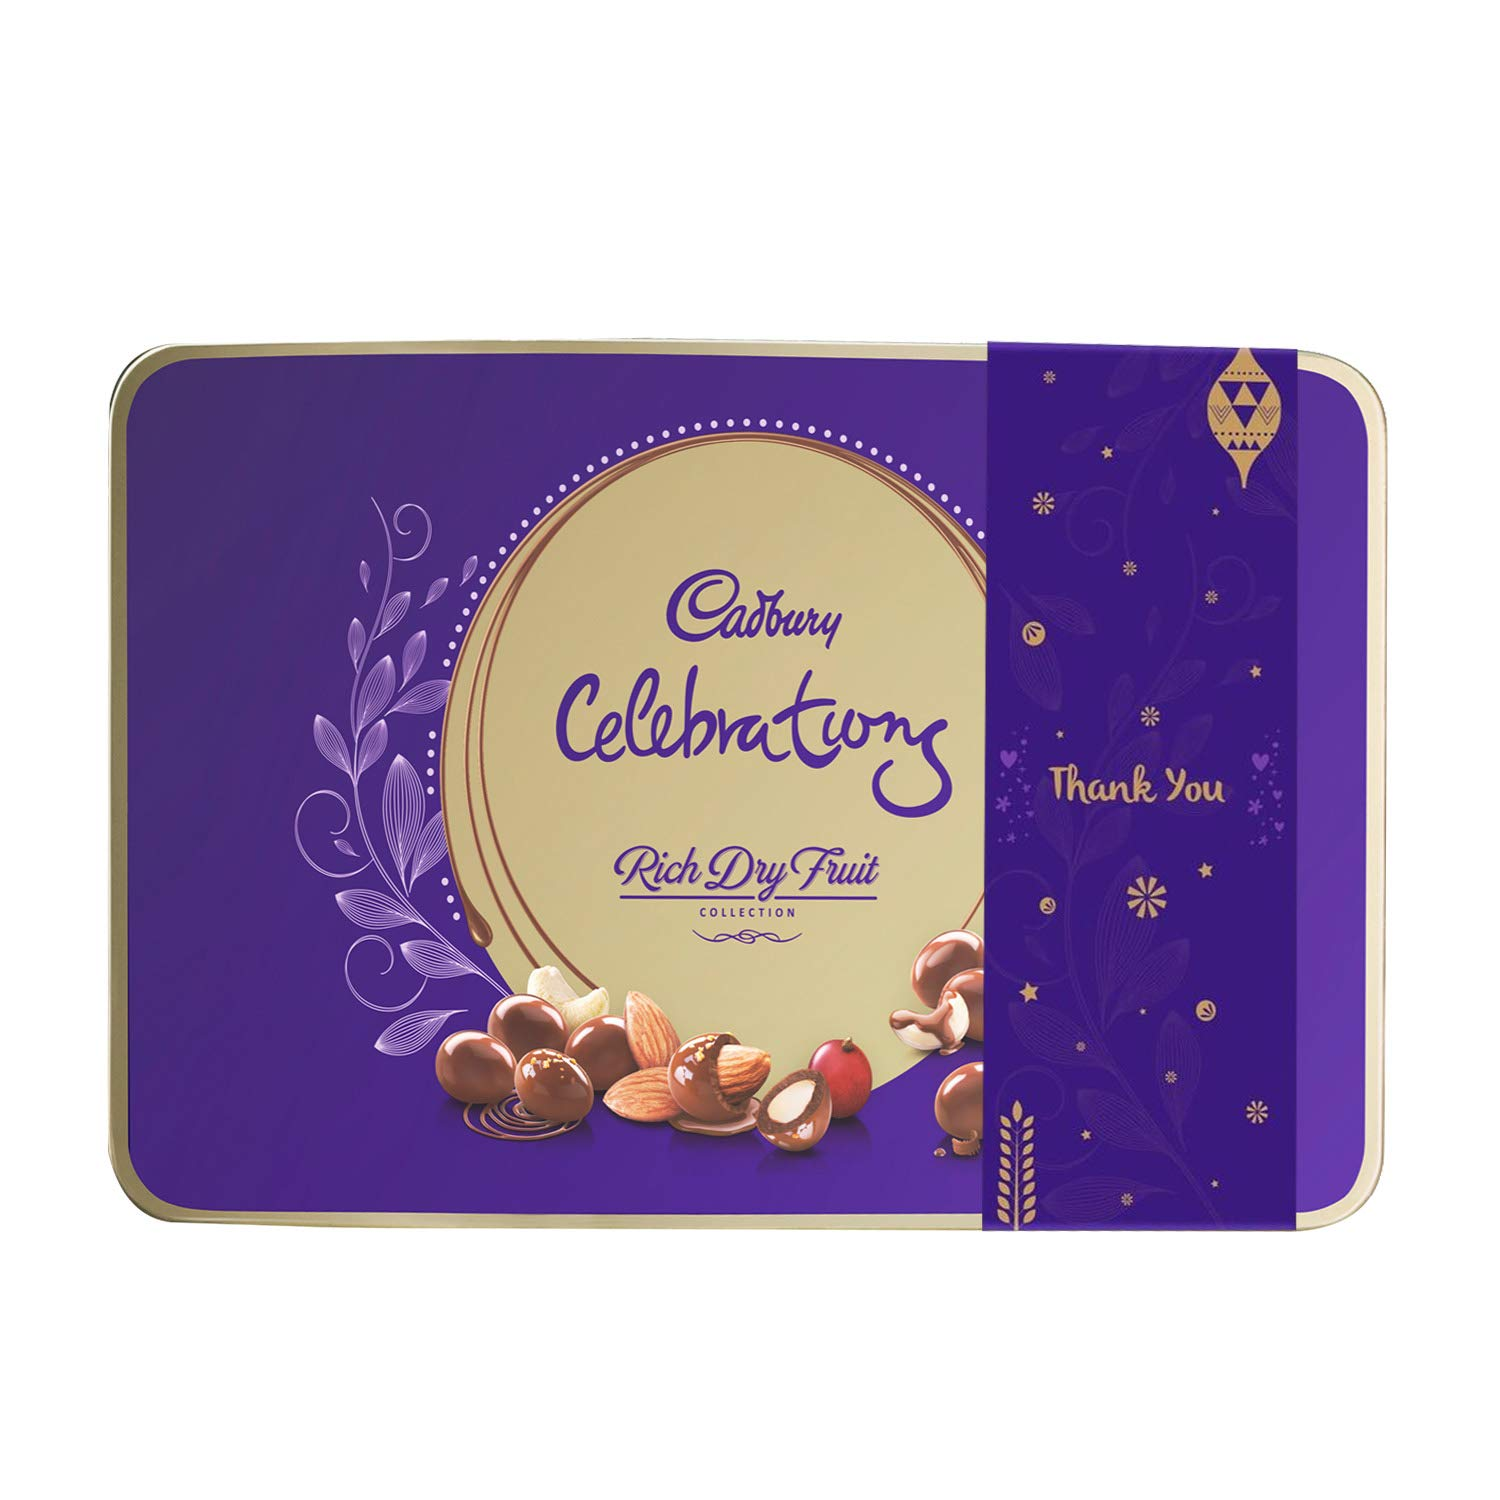 Cadbury Celebrations Rich Dry Fruit Chocolate Thank You Gift